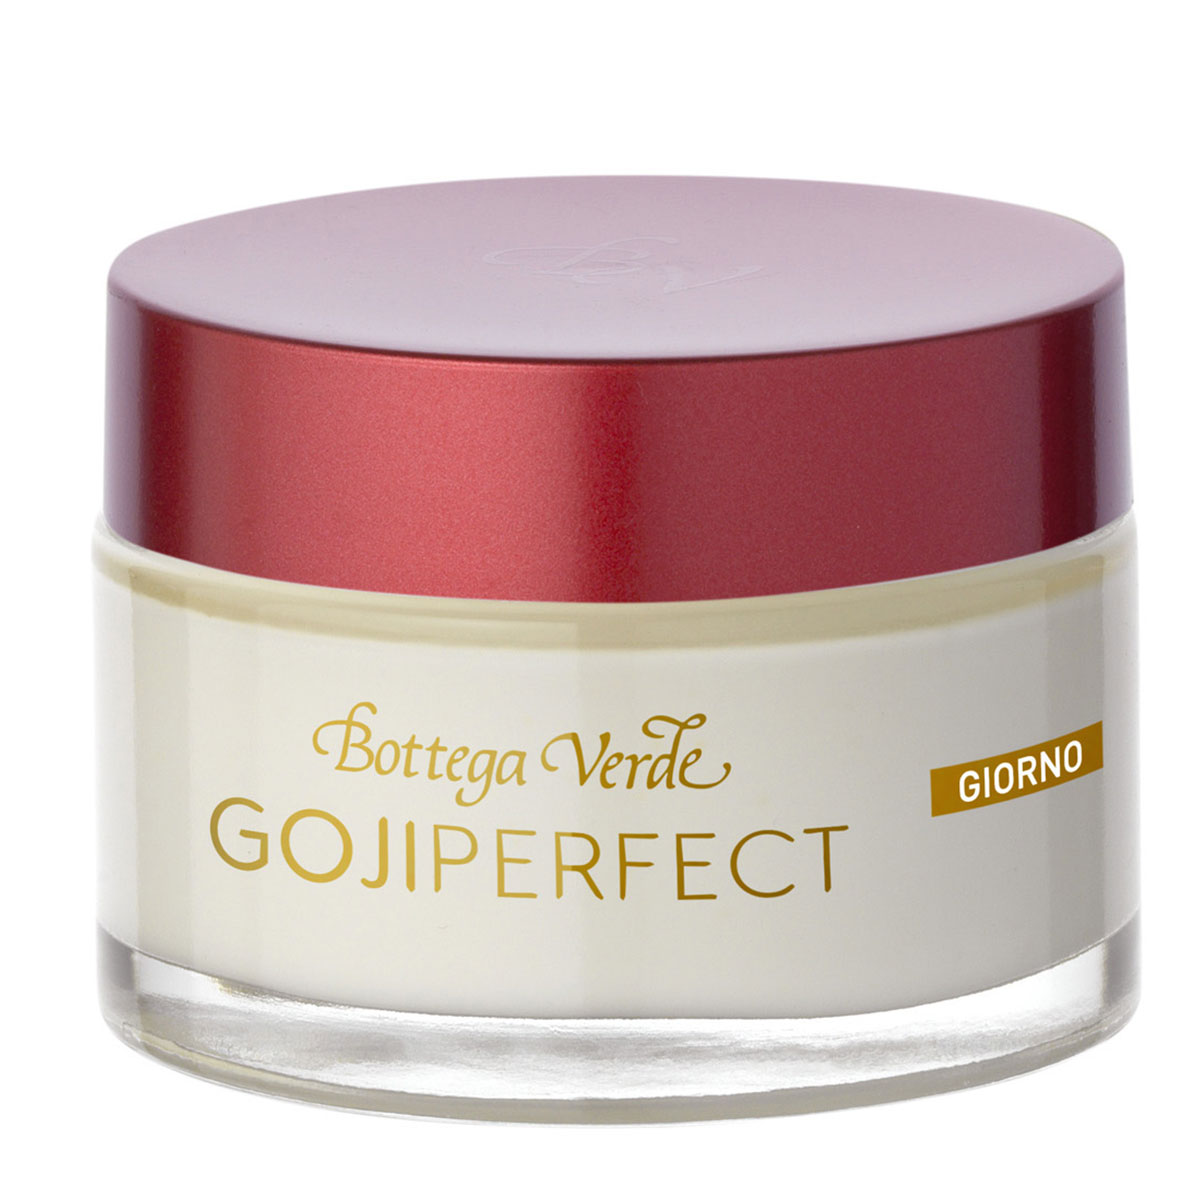 Tratament antirid intensiv de zi cu pro-retinol si extract de goji - Goji Perfect, 50 ML